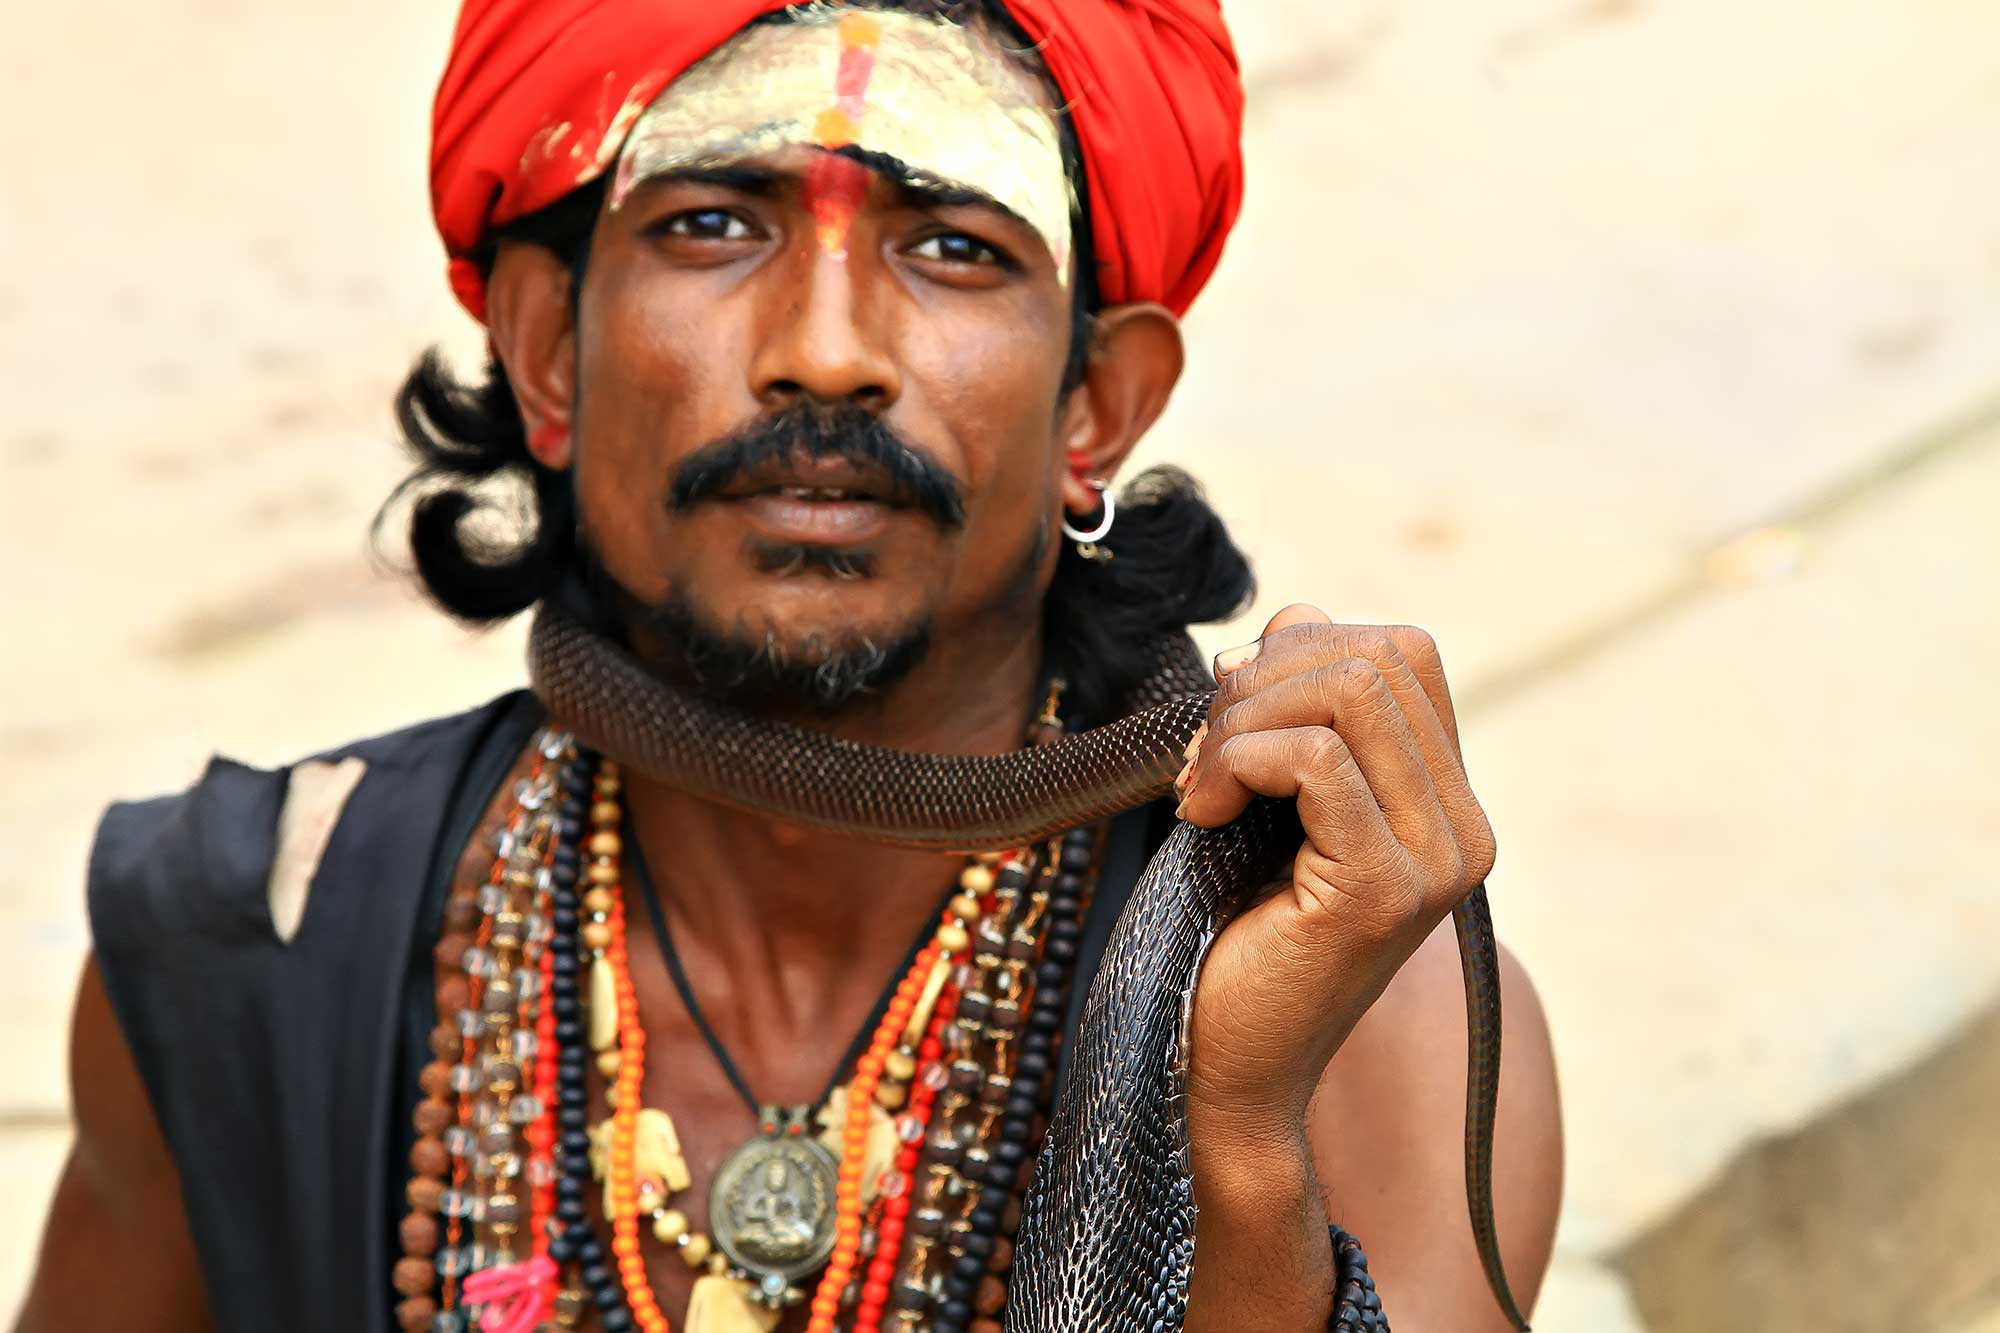 portrait-cobra-man-ghats-varanasi-india